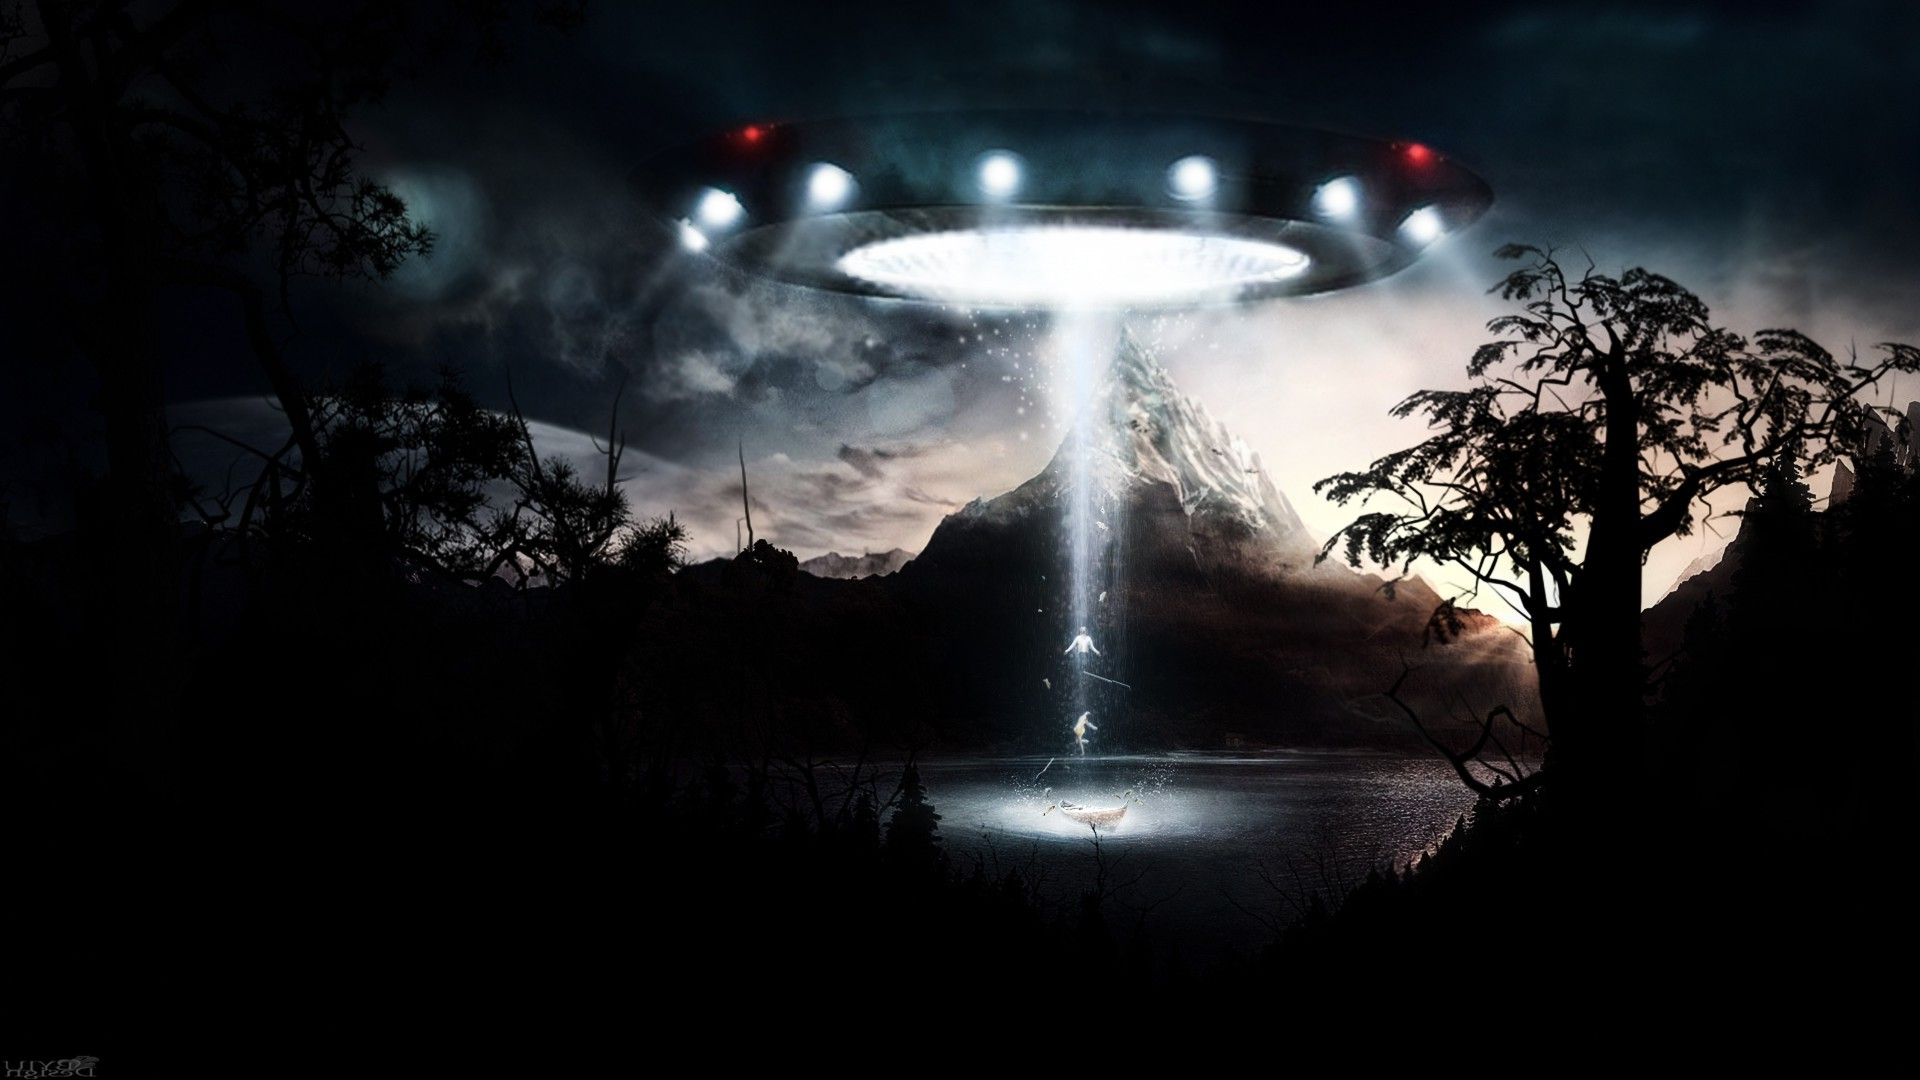 Iphone X Wallpaper Gif Landscape Fantasy Art Ufo Wallpapers Hd Desktop And Mobile